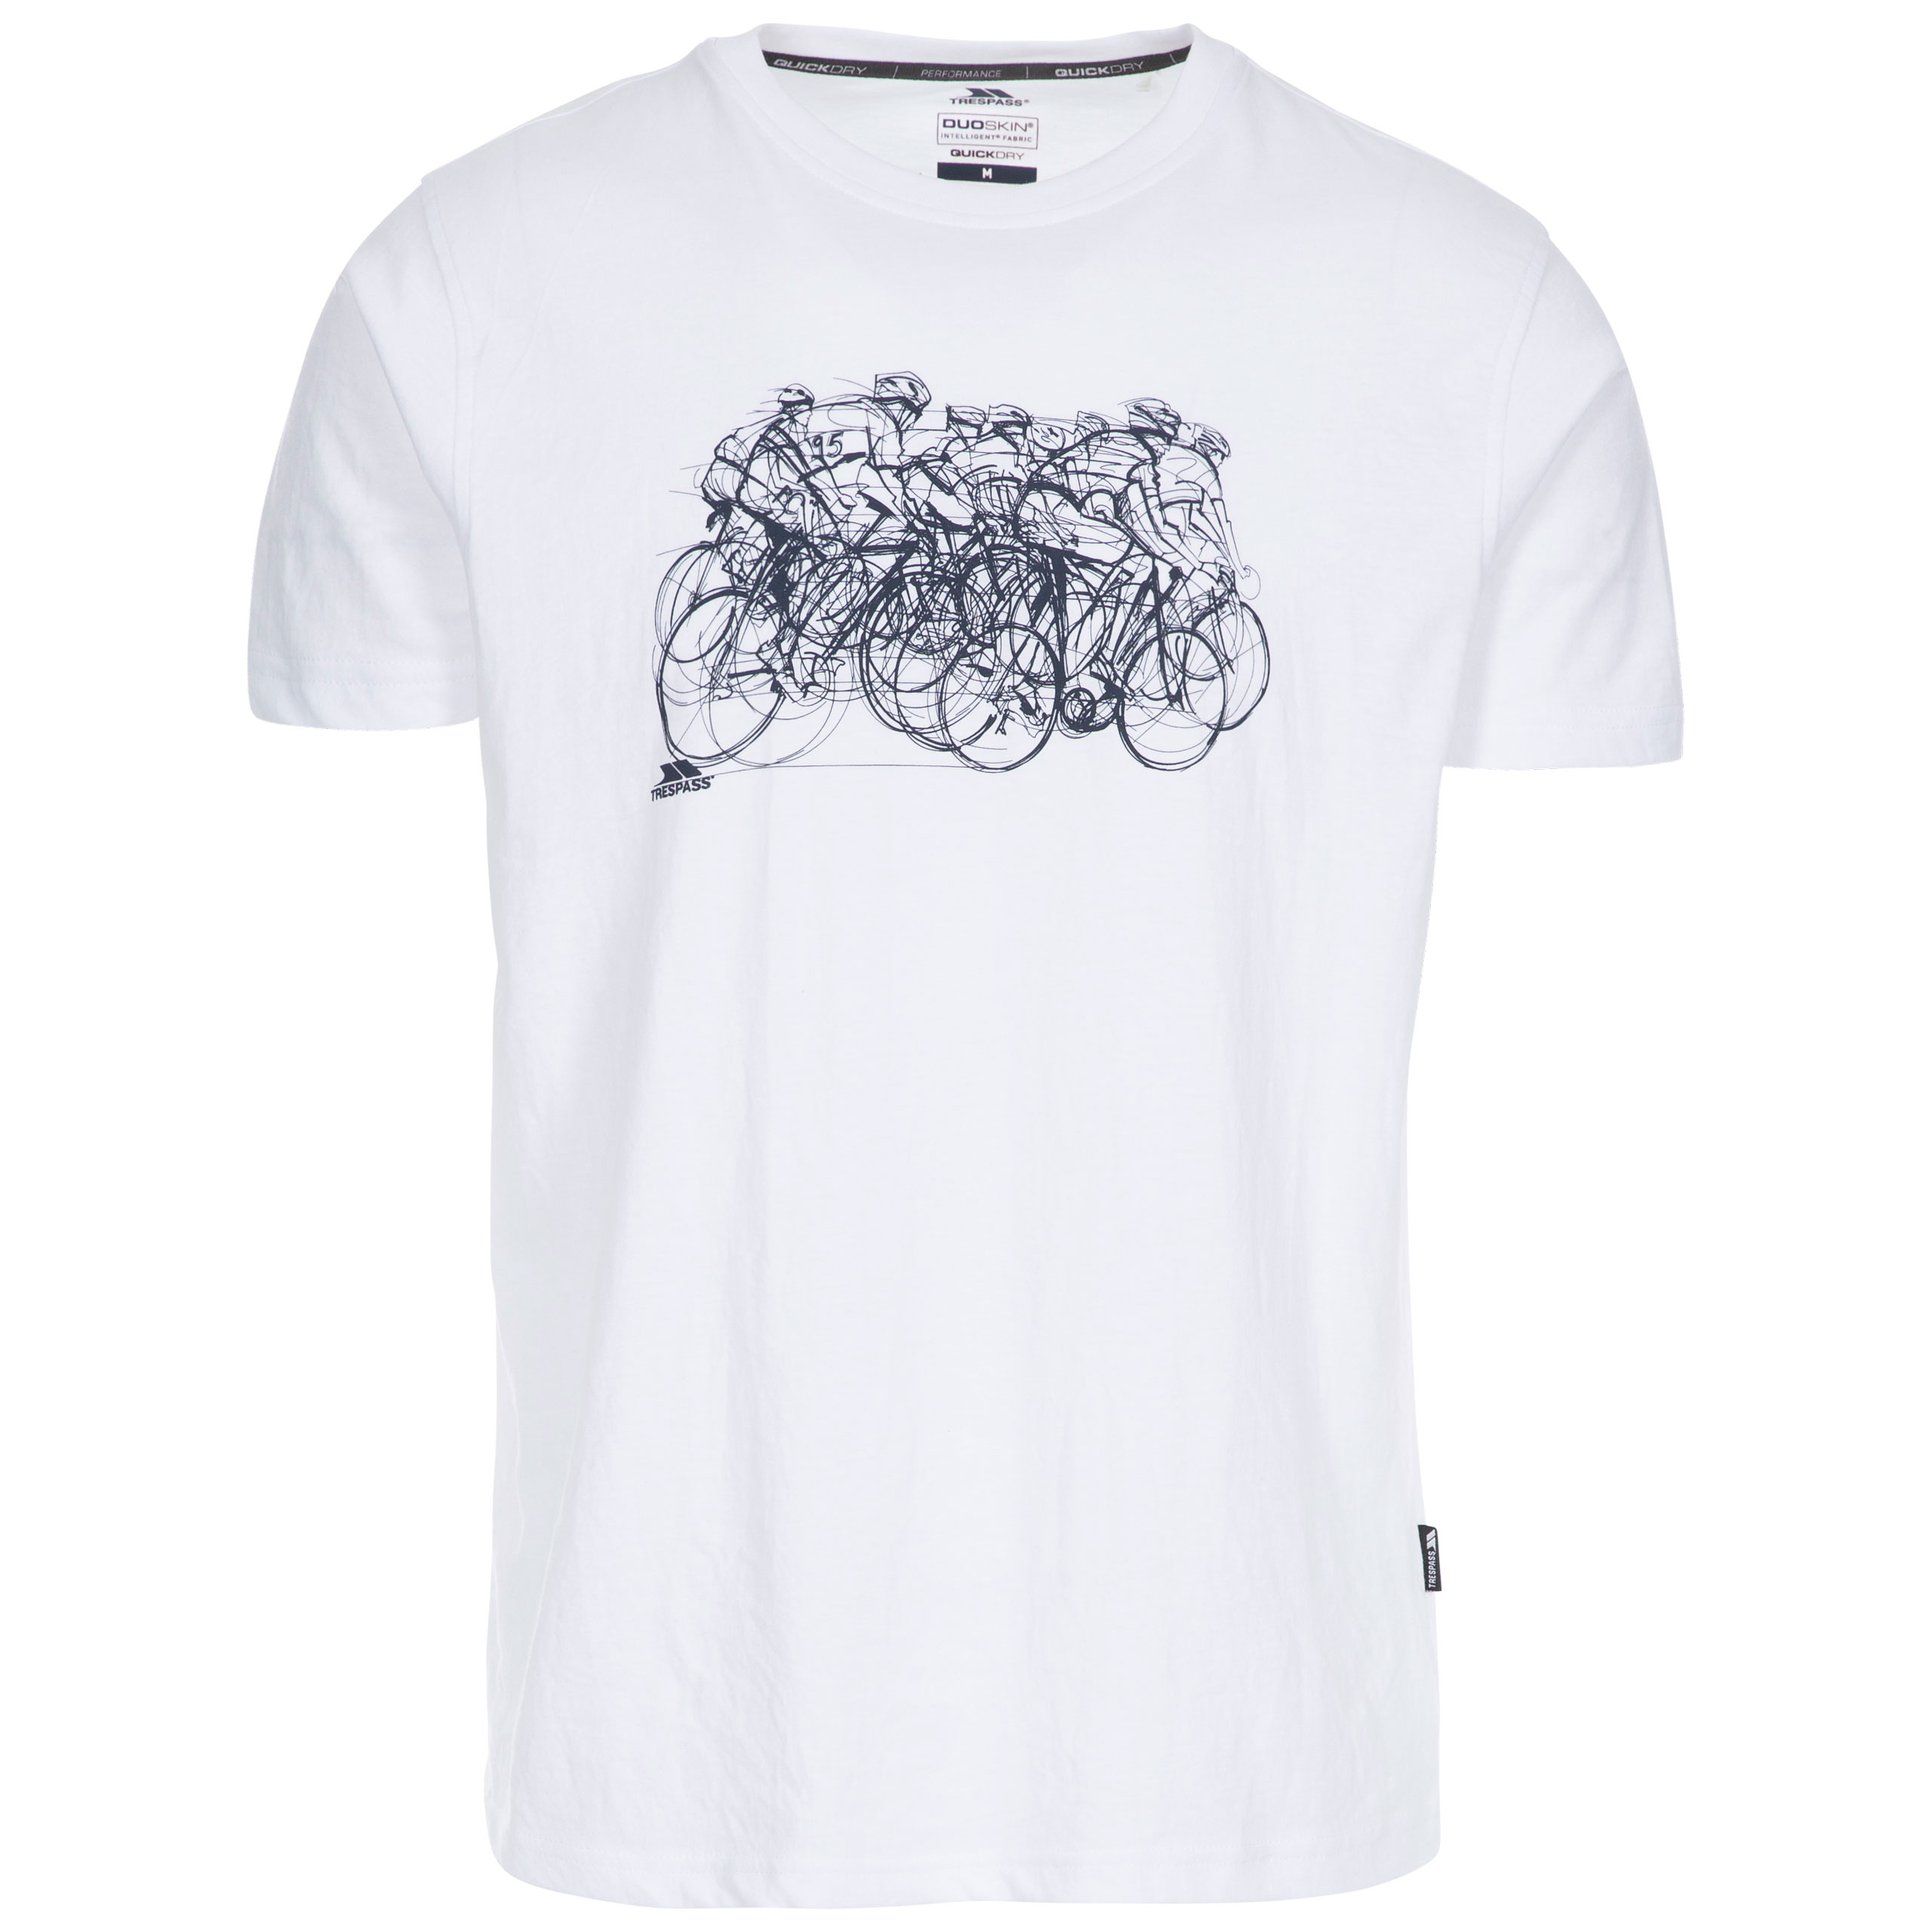 Wicky Ii Mens Quick Dry Casual T-shirt